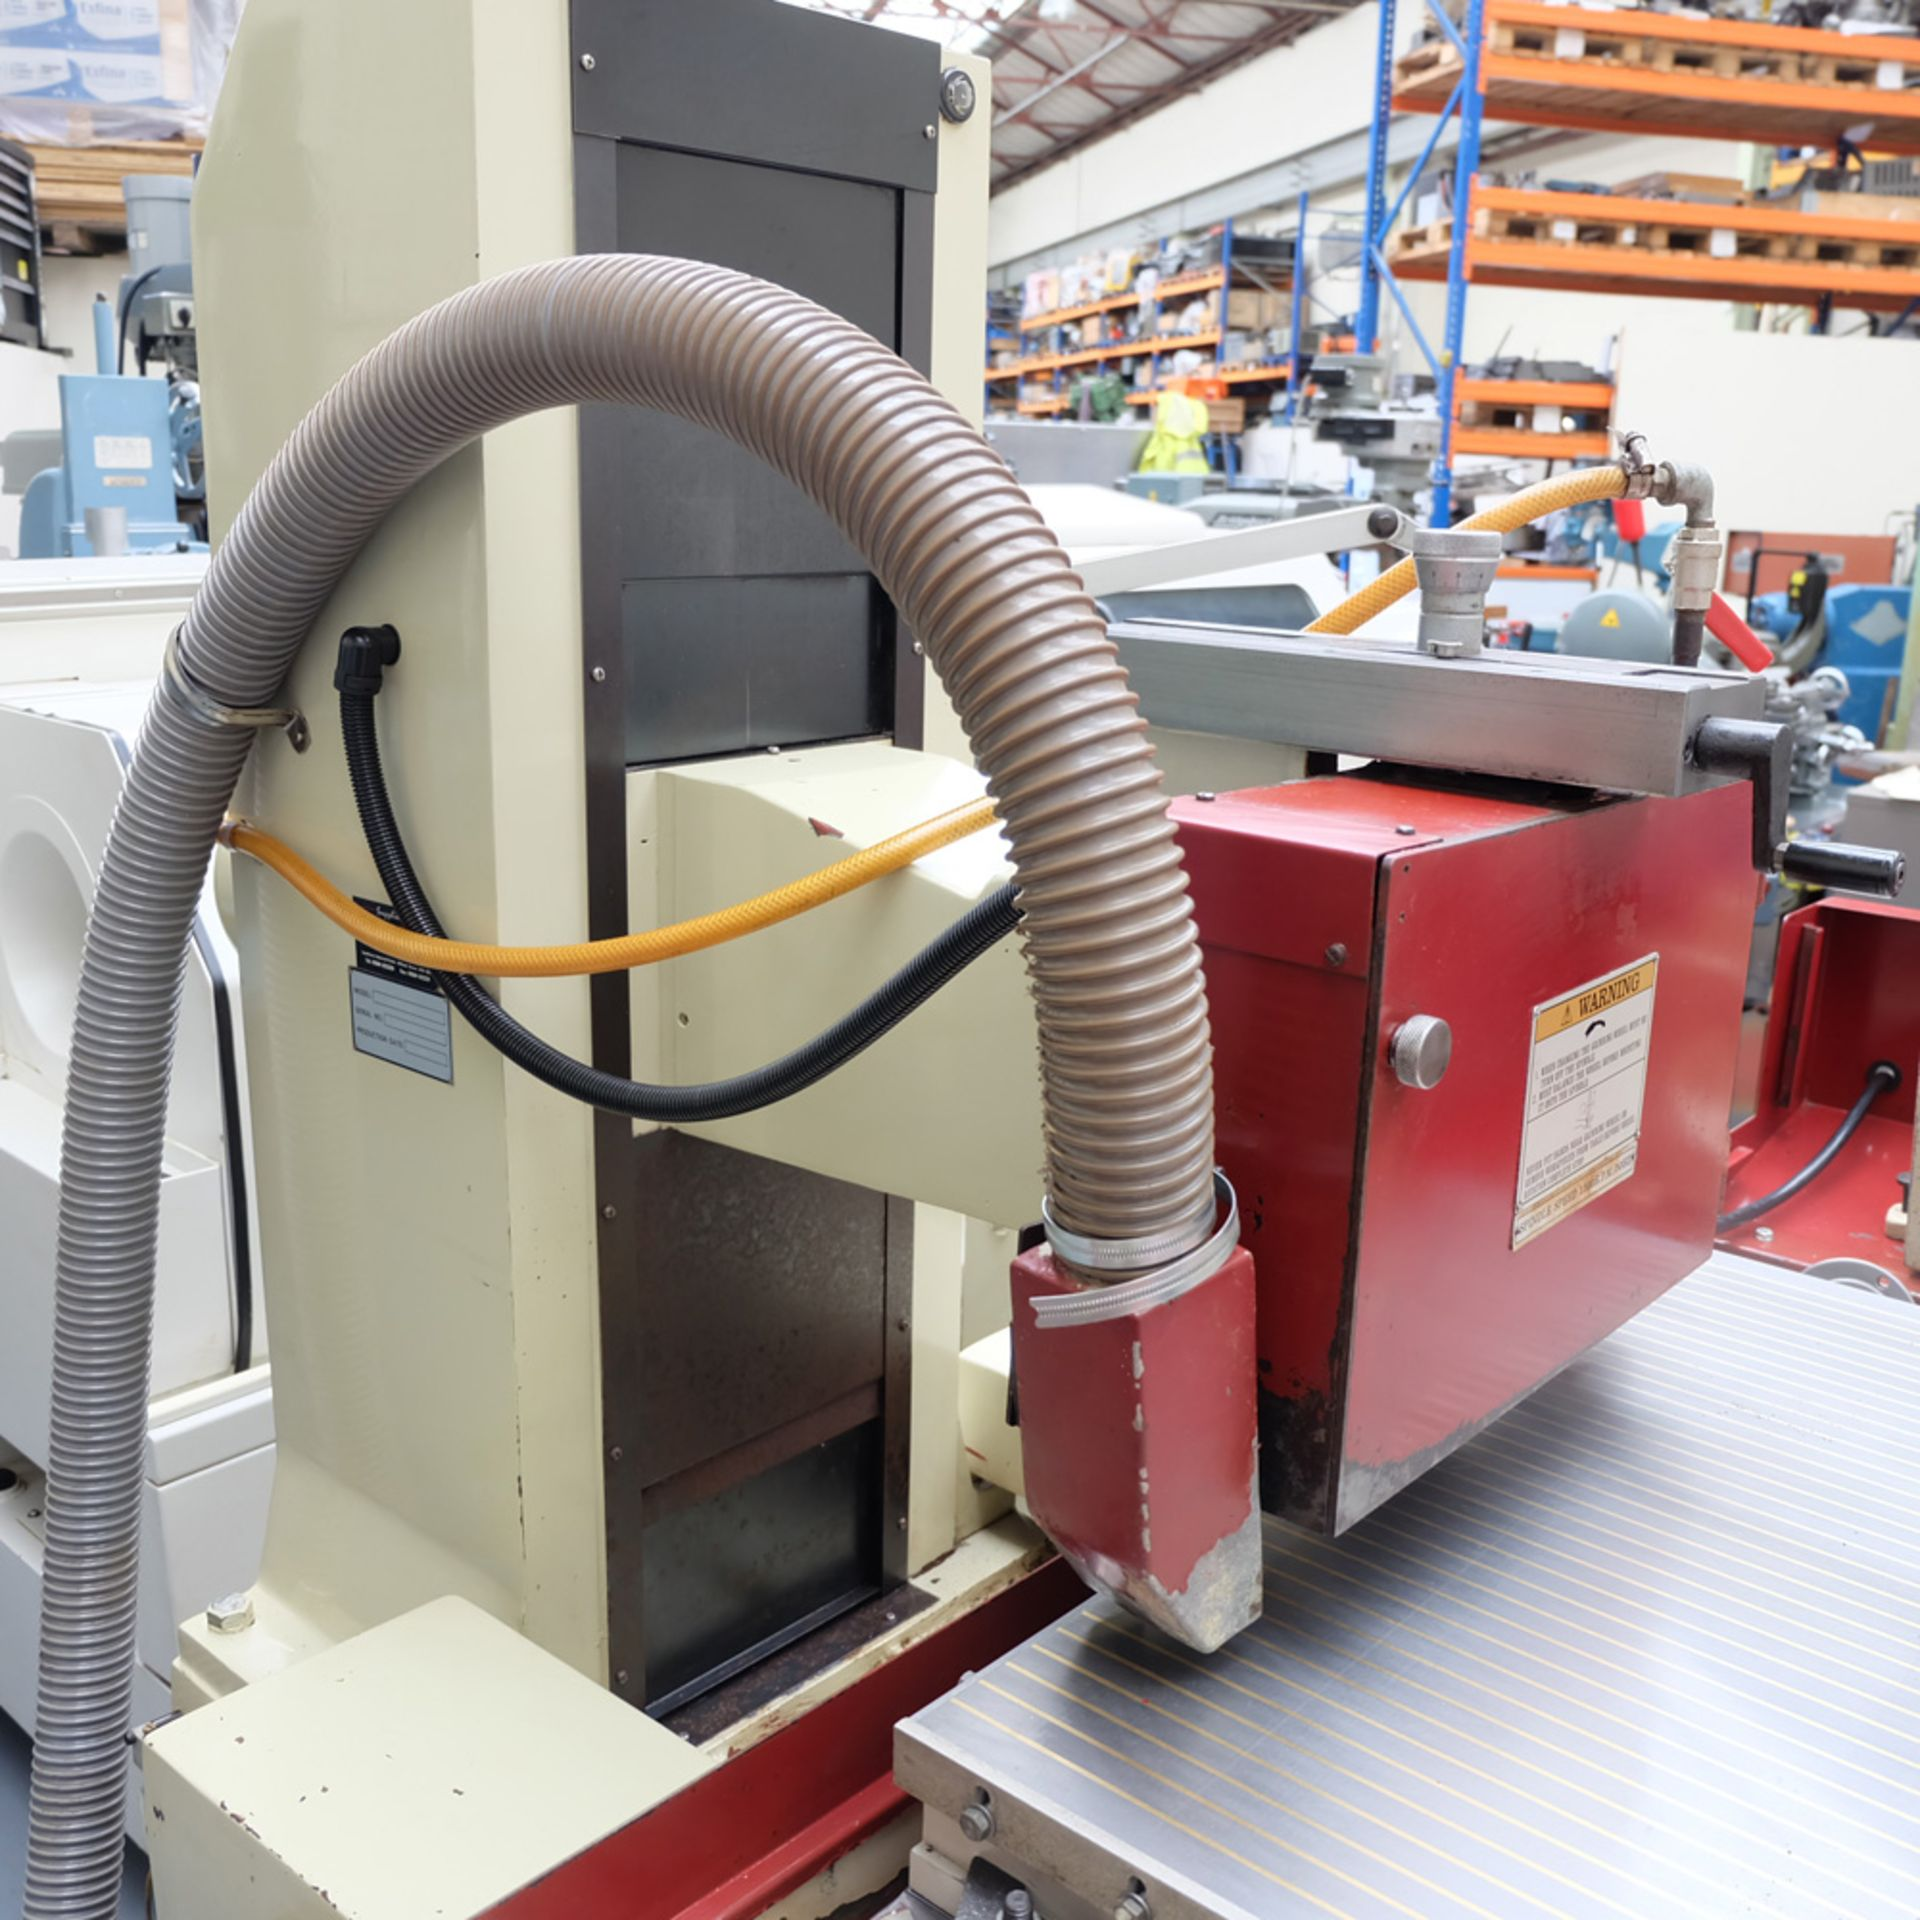 """XYZ Type 1632 Tool Room Surface Grinding Machine. Capacity 32"""" x 16"""". 32"""" x 16"""" Magnetic Chuck. - Image 10 of 17"""